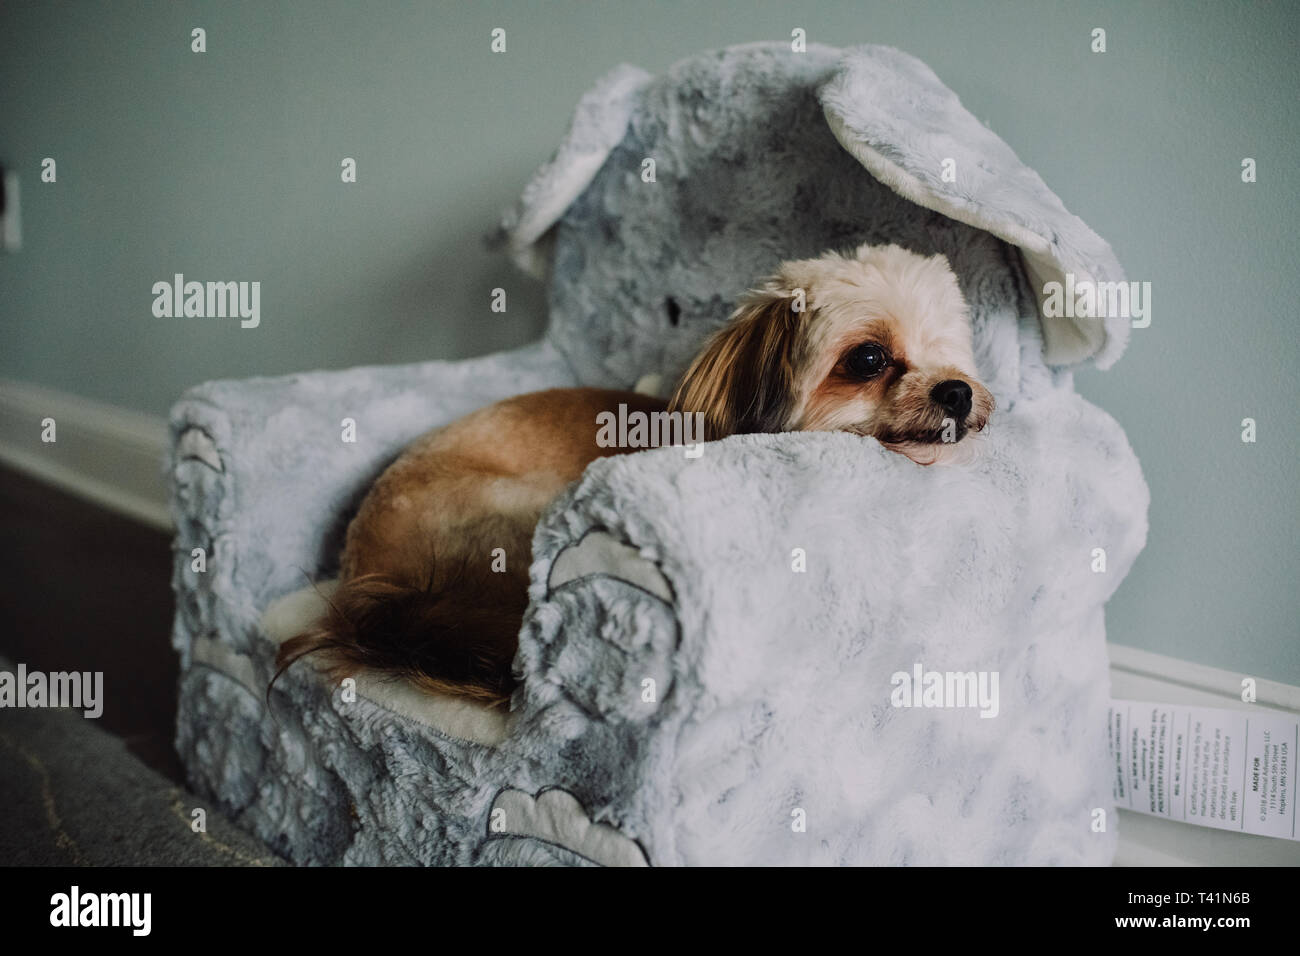 Little dog in chair - Stock Image